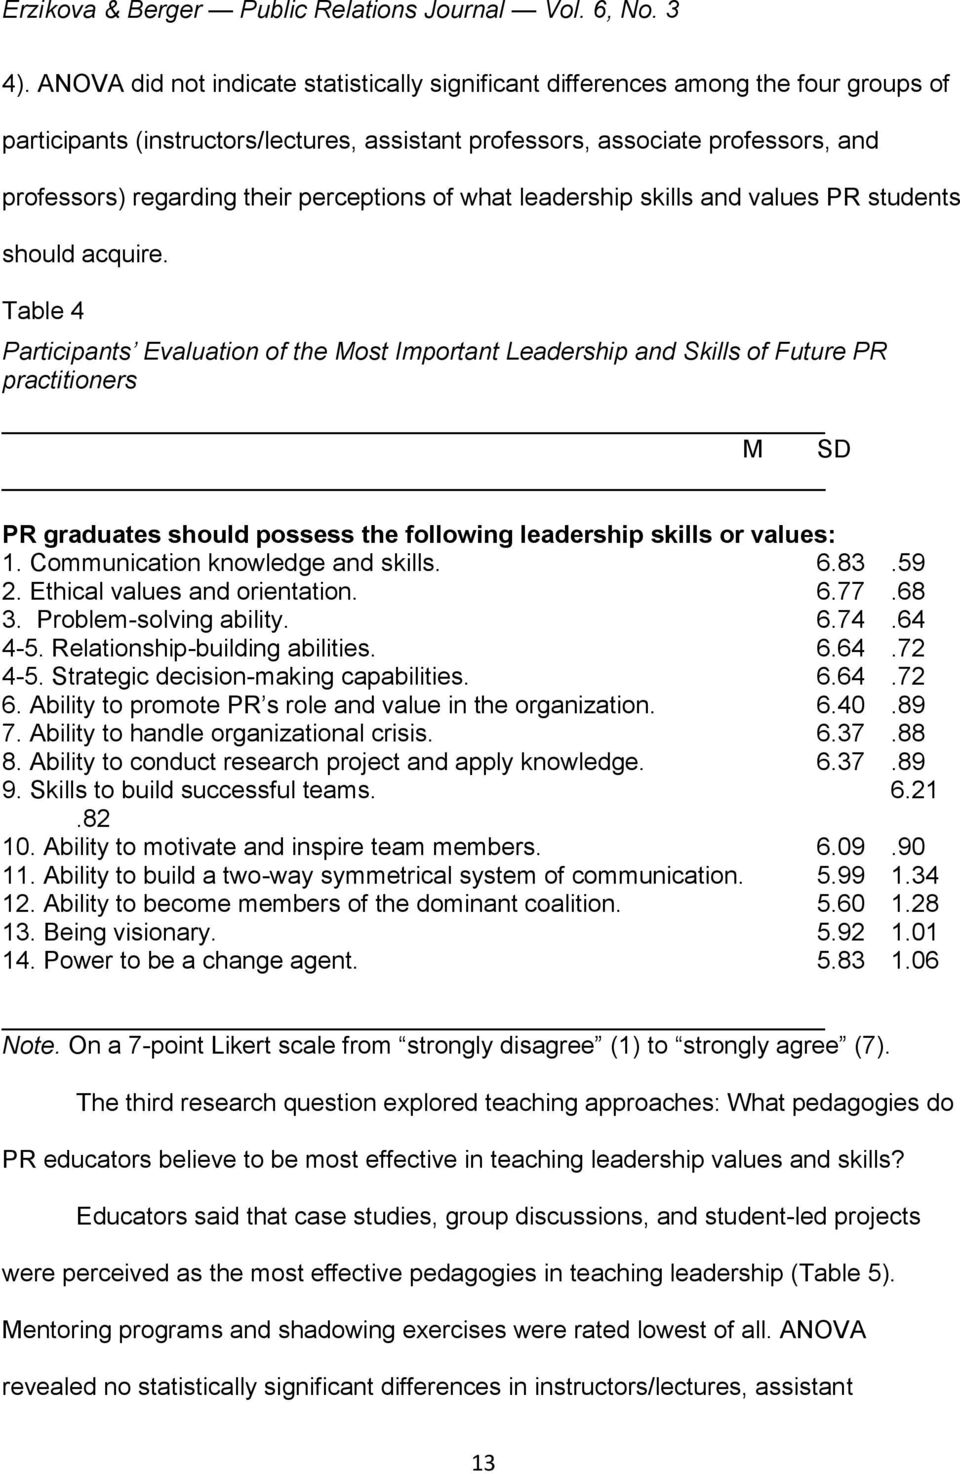 perceptions of what leadership skills and values PR students should acquire.